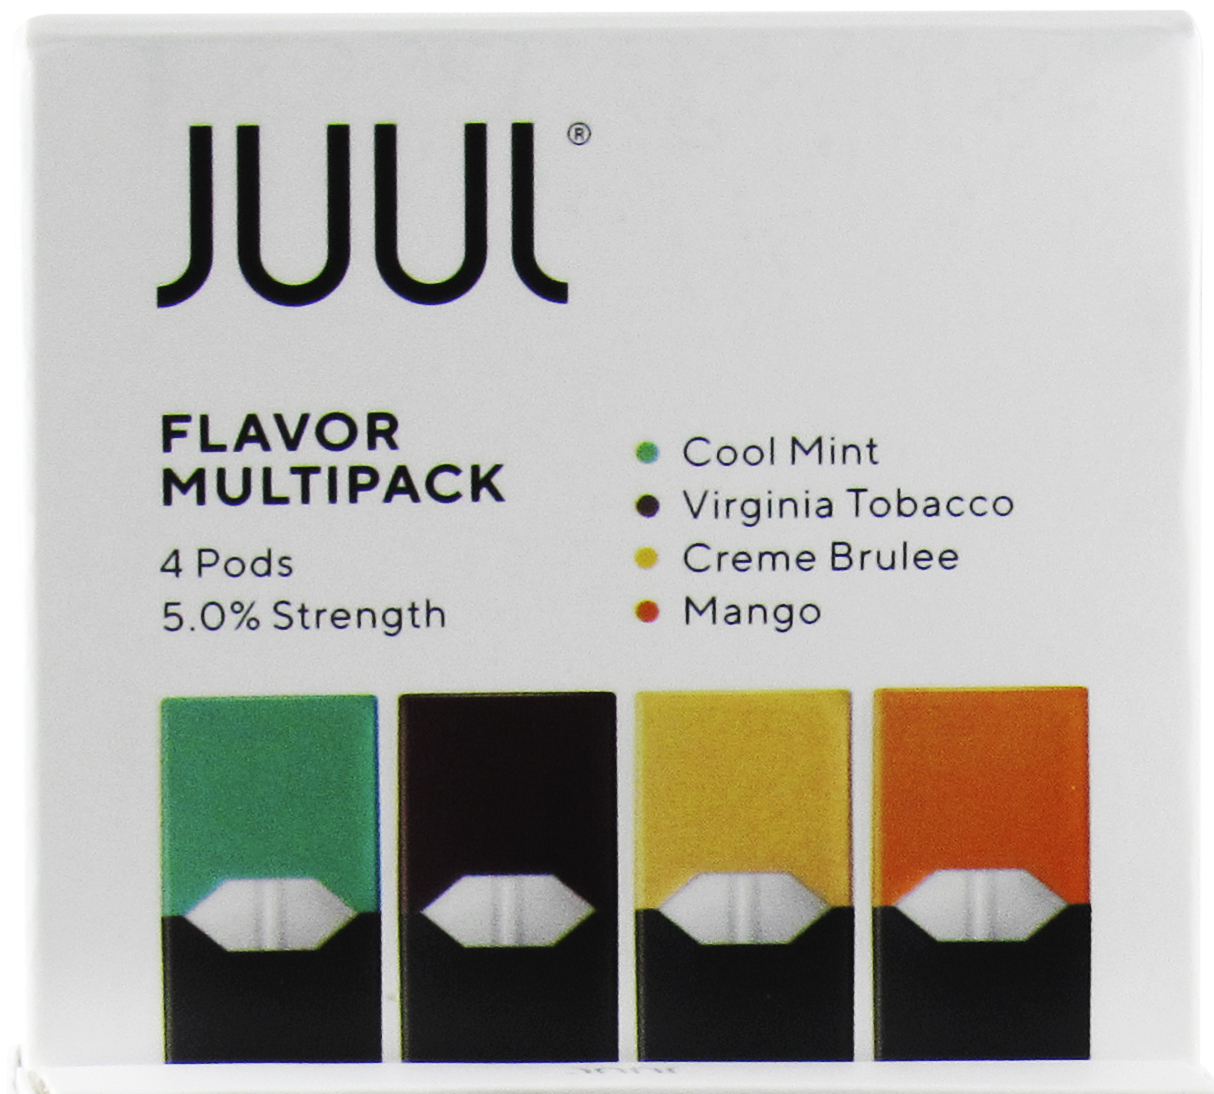 File:Juul flavour multipack (cropped).jpg - Wikimedia Commons